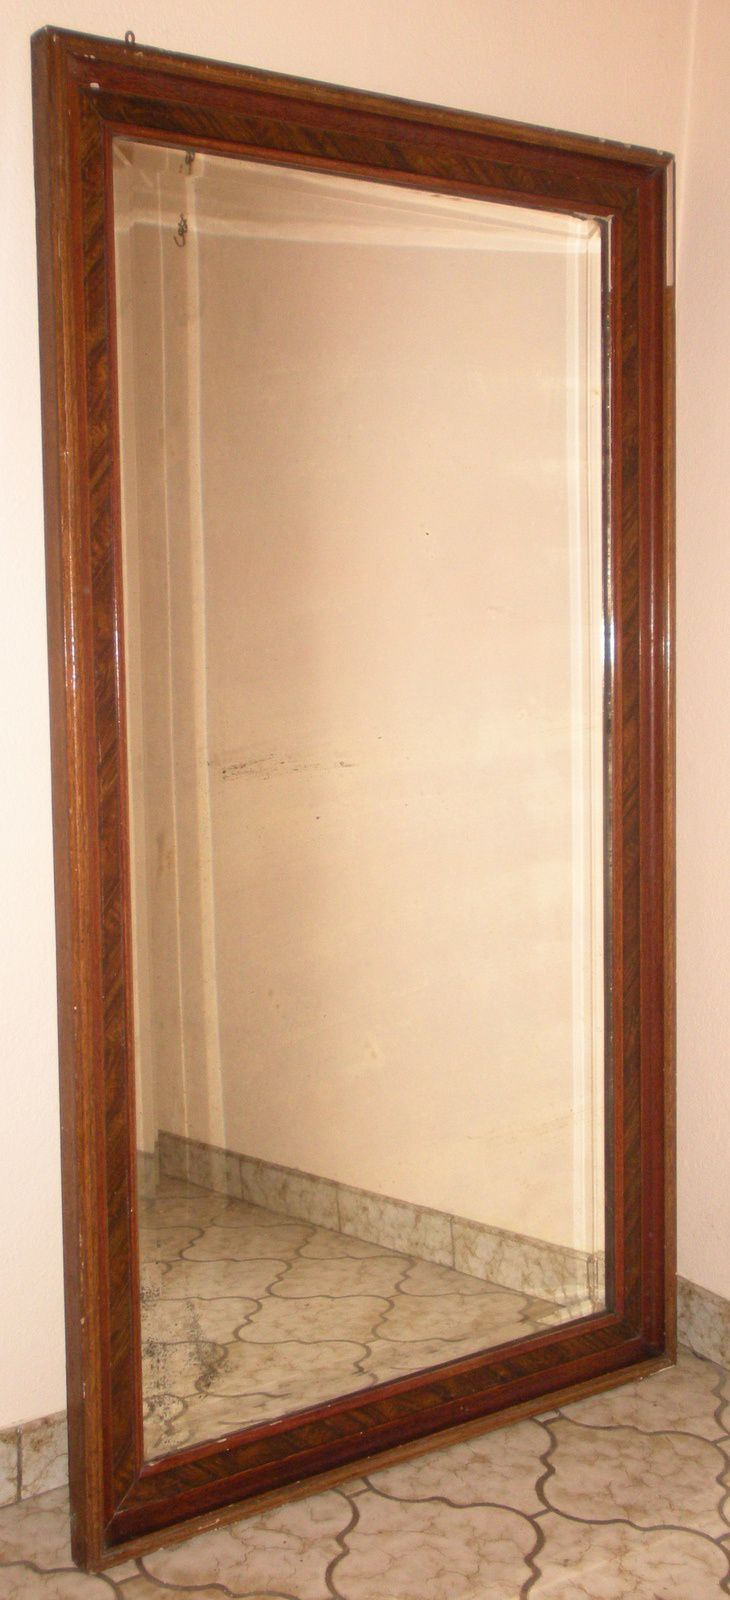 grand miroir 2 metres catalogues en factotum grand